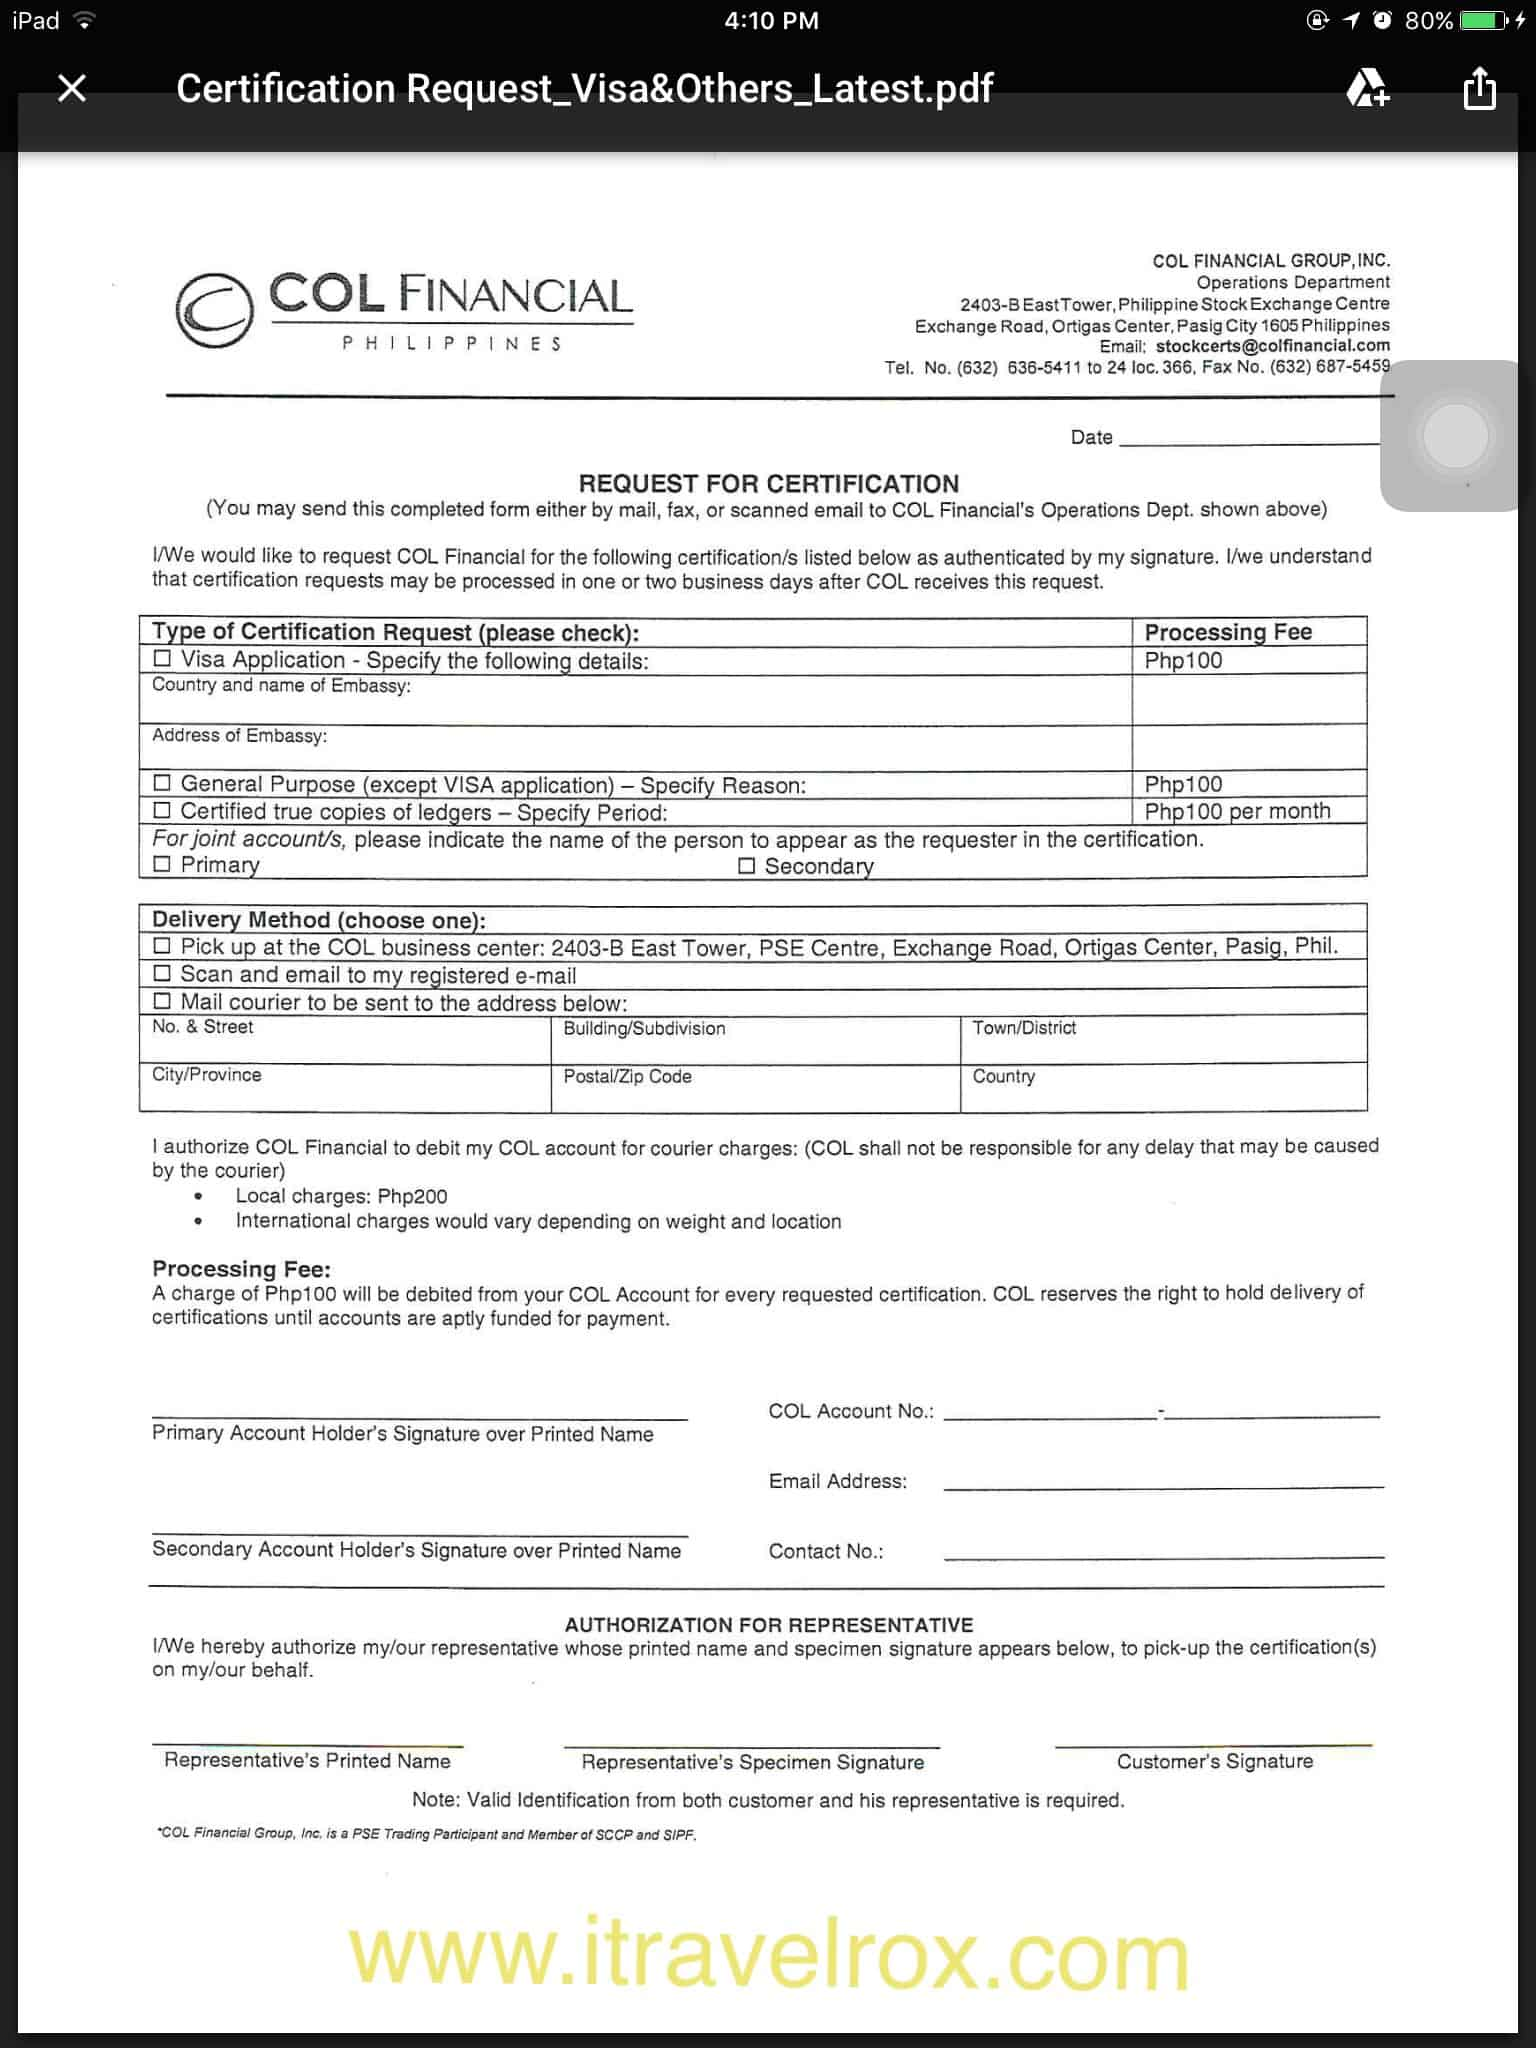 How to request stock certificate from col financial philippines how to request stock certificate from col financial philippines for visa application itravelrox yadclub Choice Image